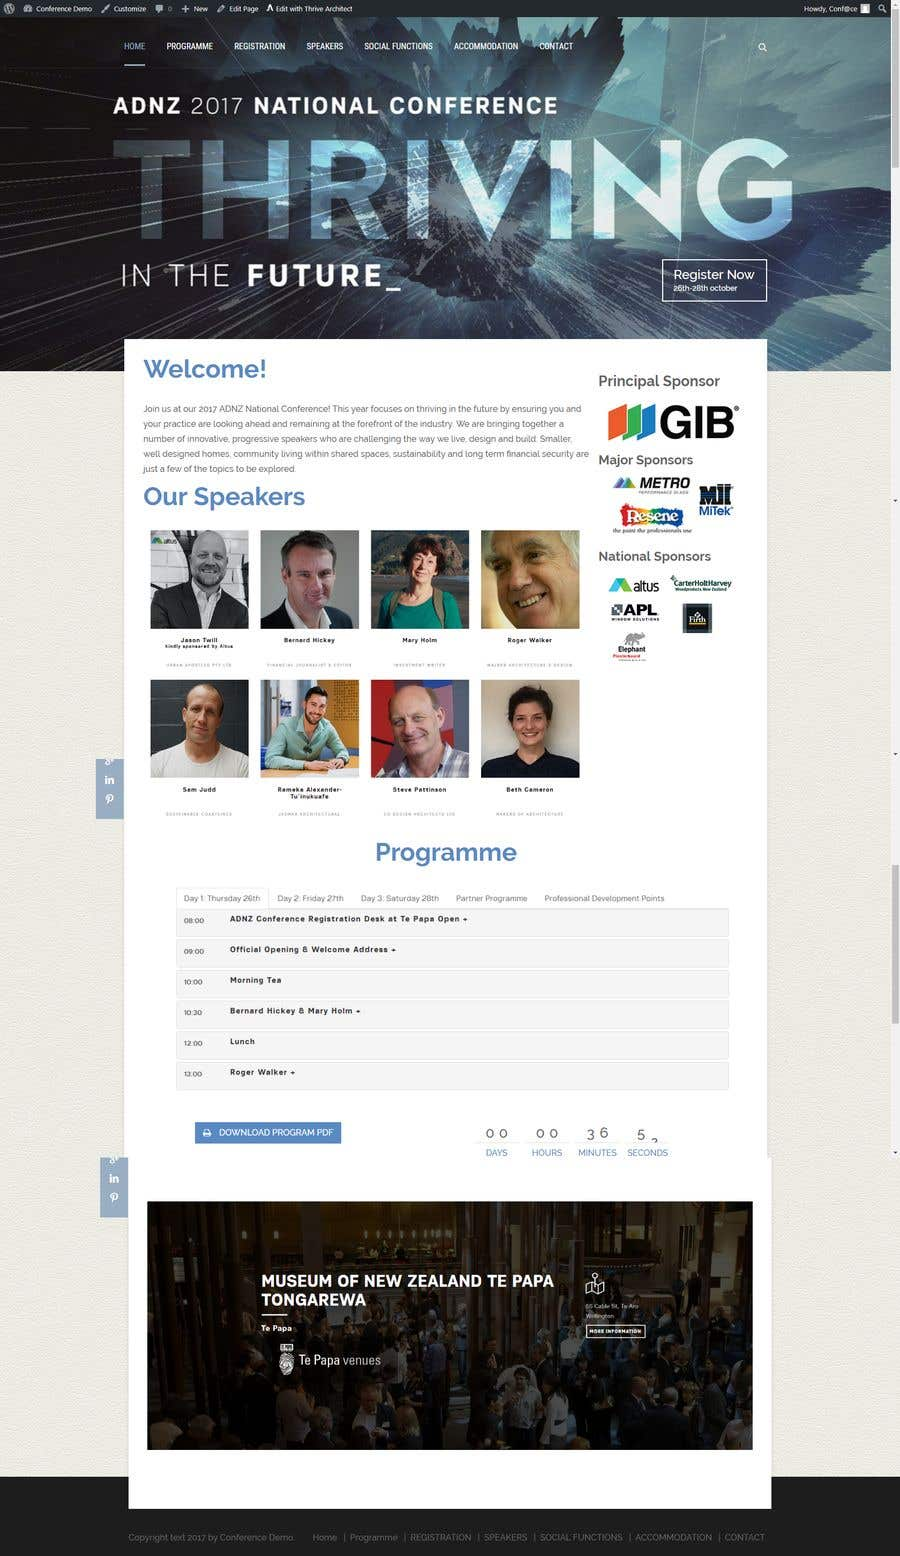 Contest Entry 12 For Conference Website Template